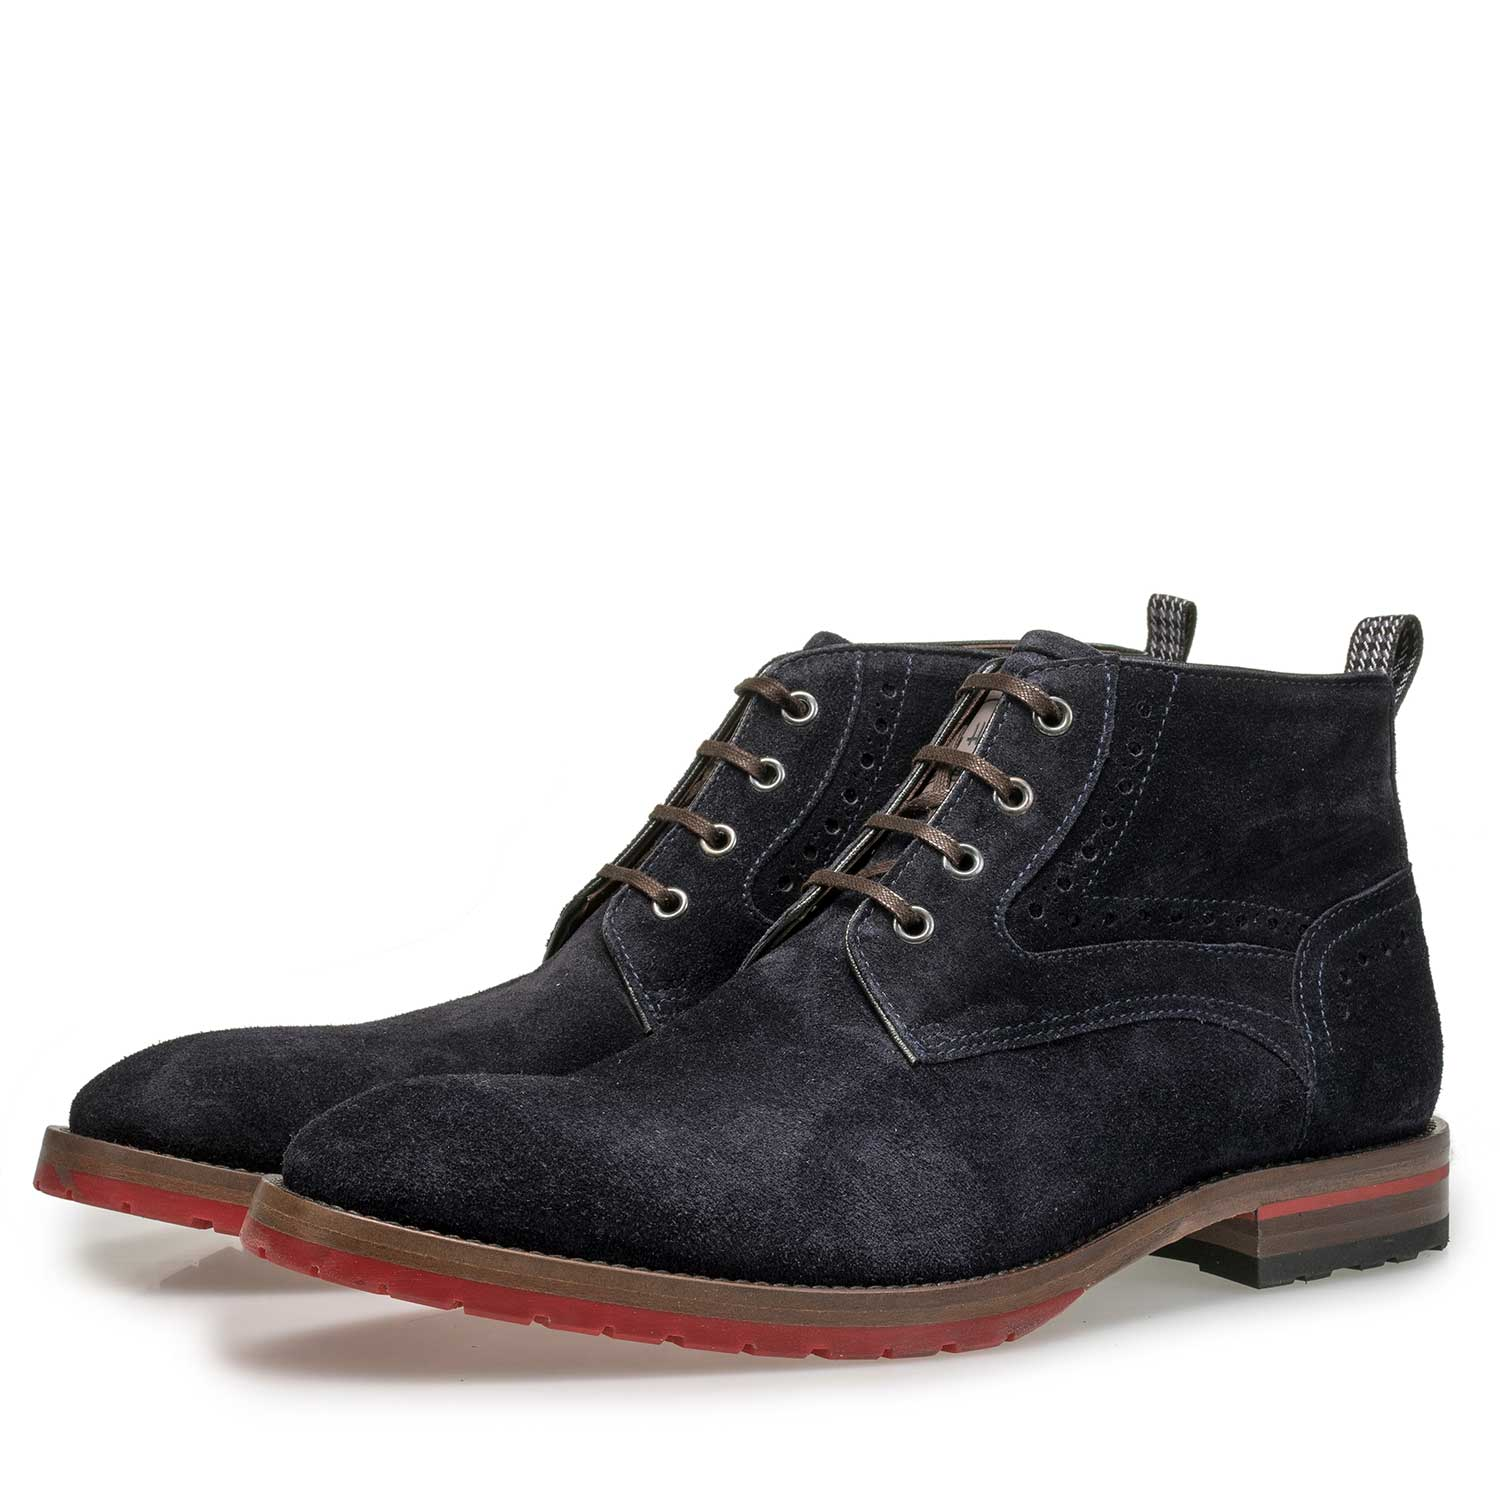 10317/07 - Blue suede leather lace boot with brogue details